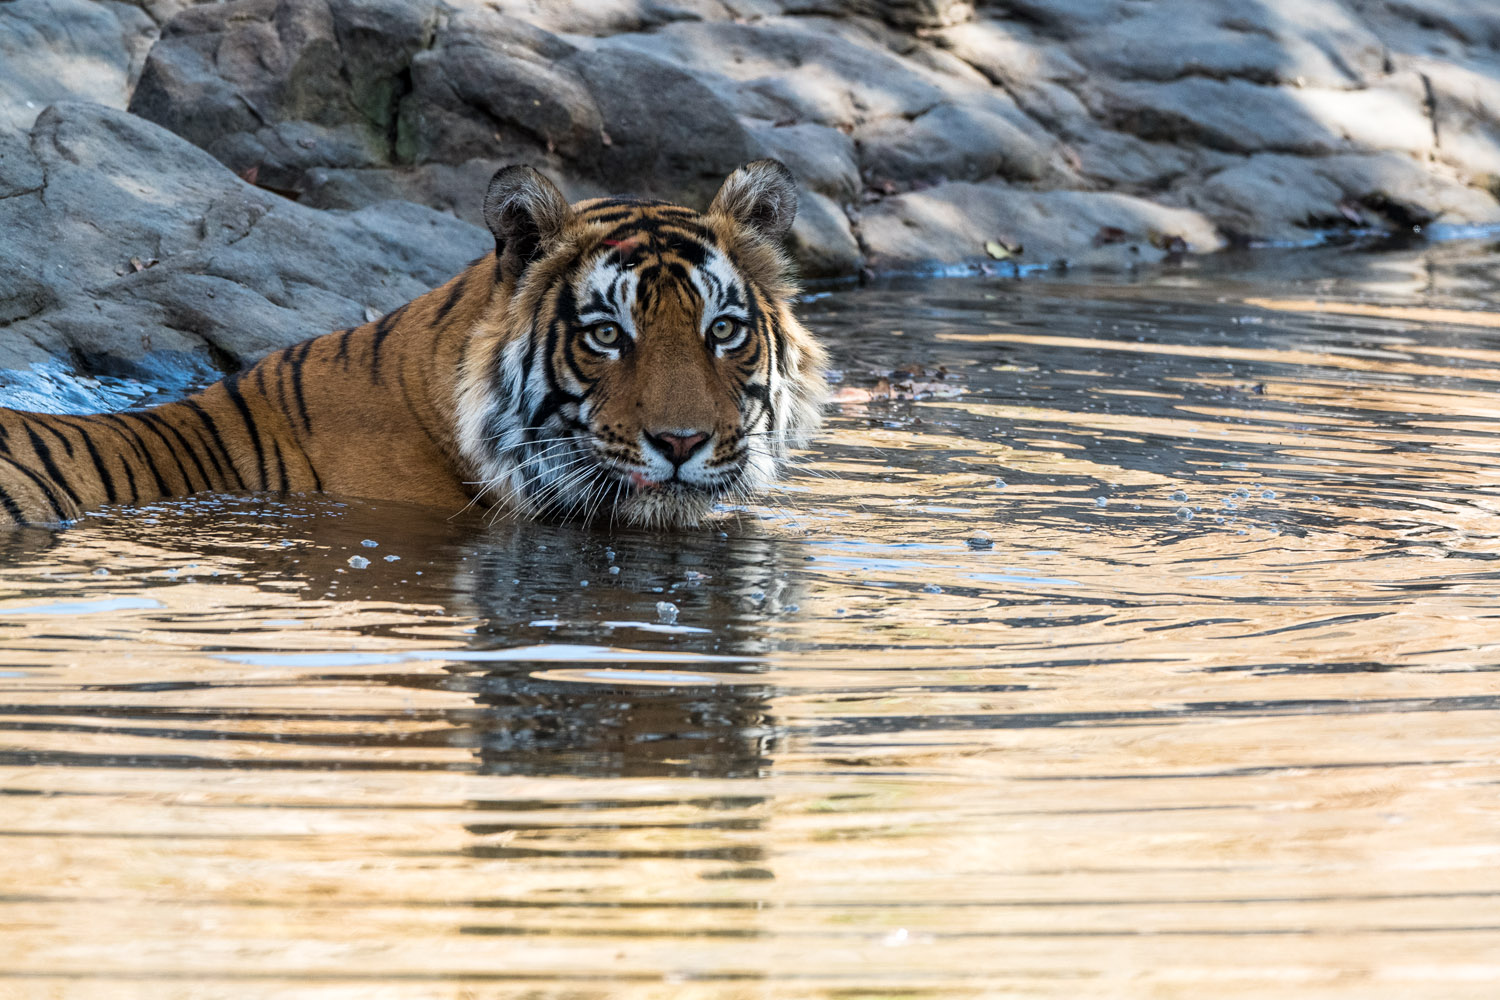 Bengal tiger bathing in pool, Ranthambhore National Park, Rajasthan, India